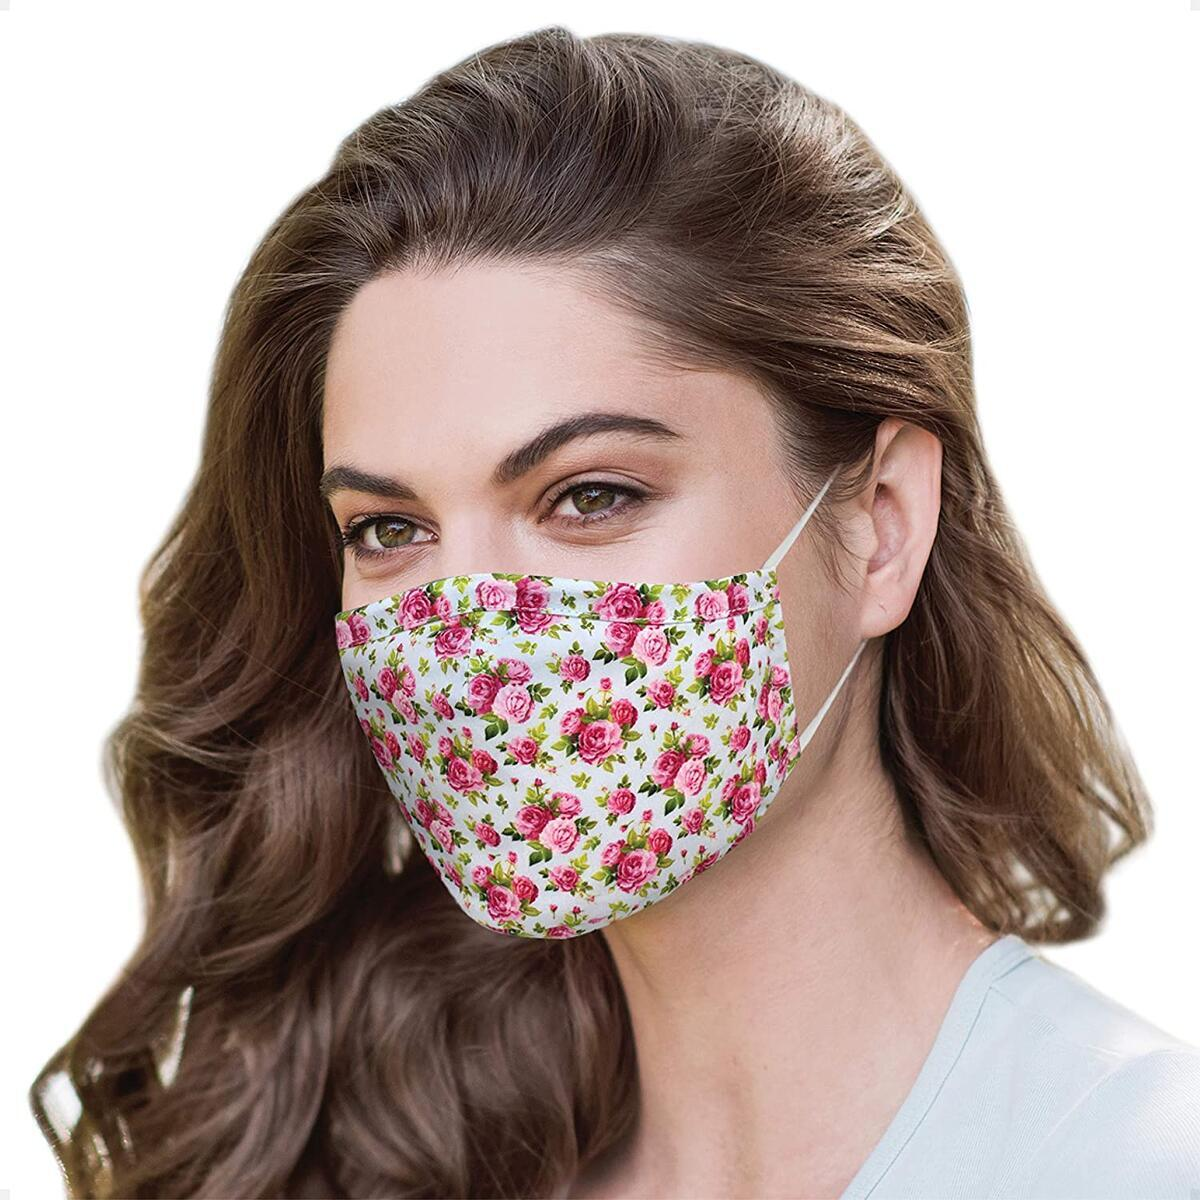 Flower Mask With Nose Wire Reusable and Washable with 4 Carbon Filters | Floral Mask | Designer Face Mask | Cotton Face Mask |Fashionable Face Mask | Travel Airplane Mouth Mask